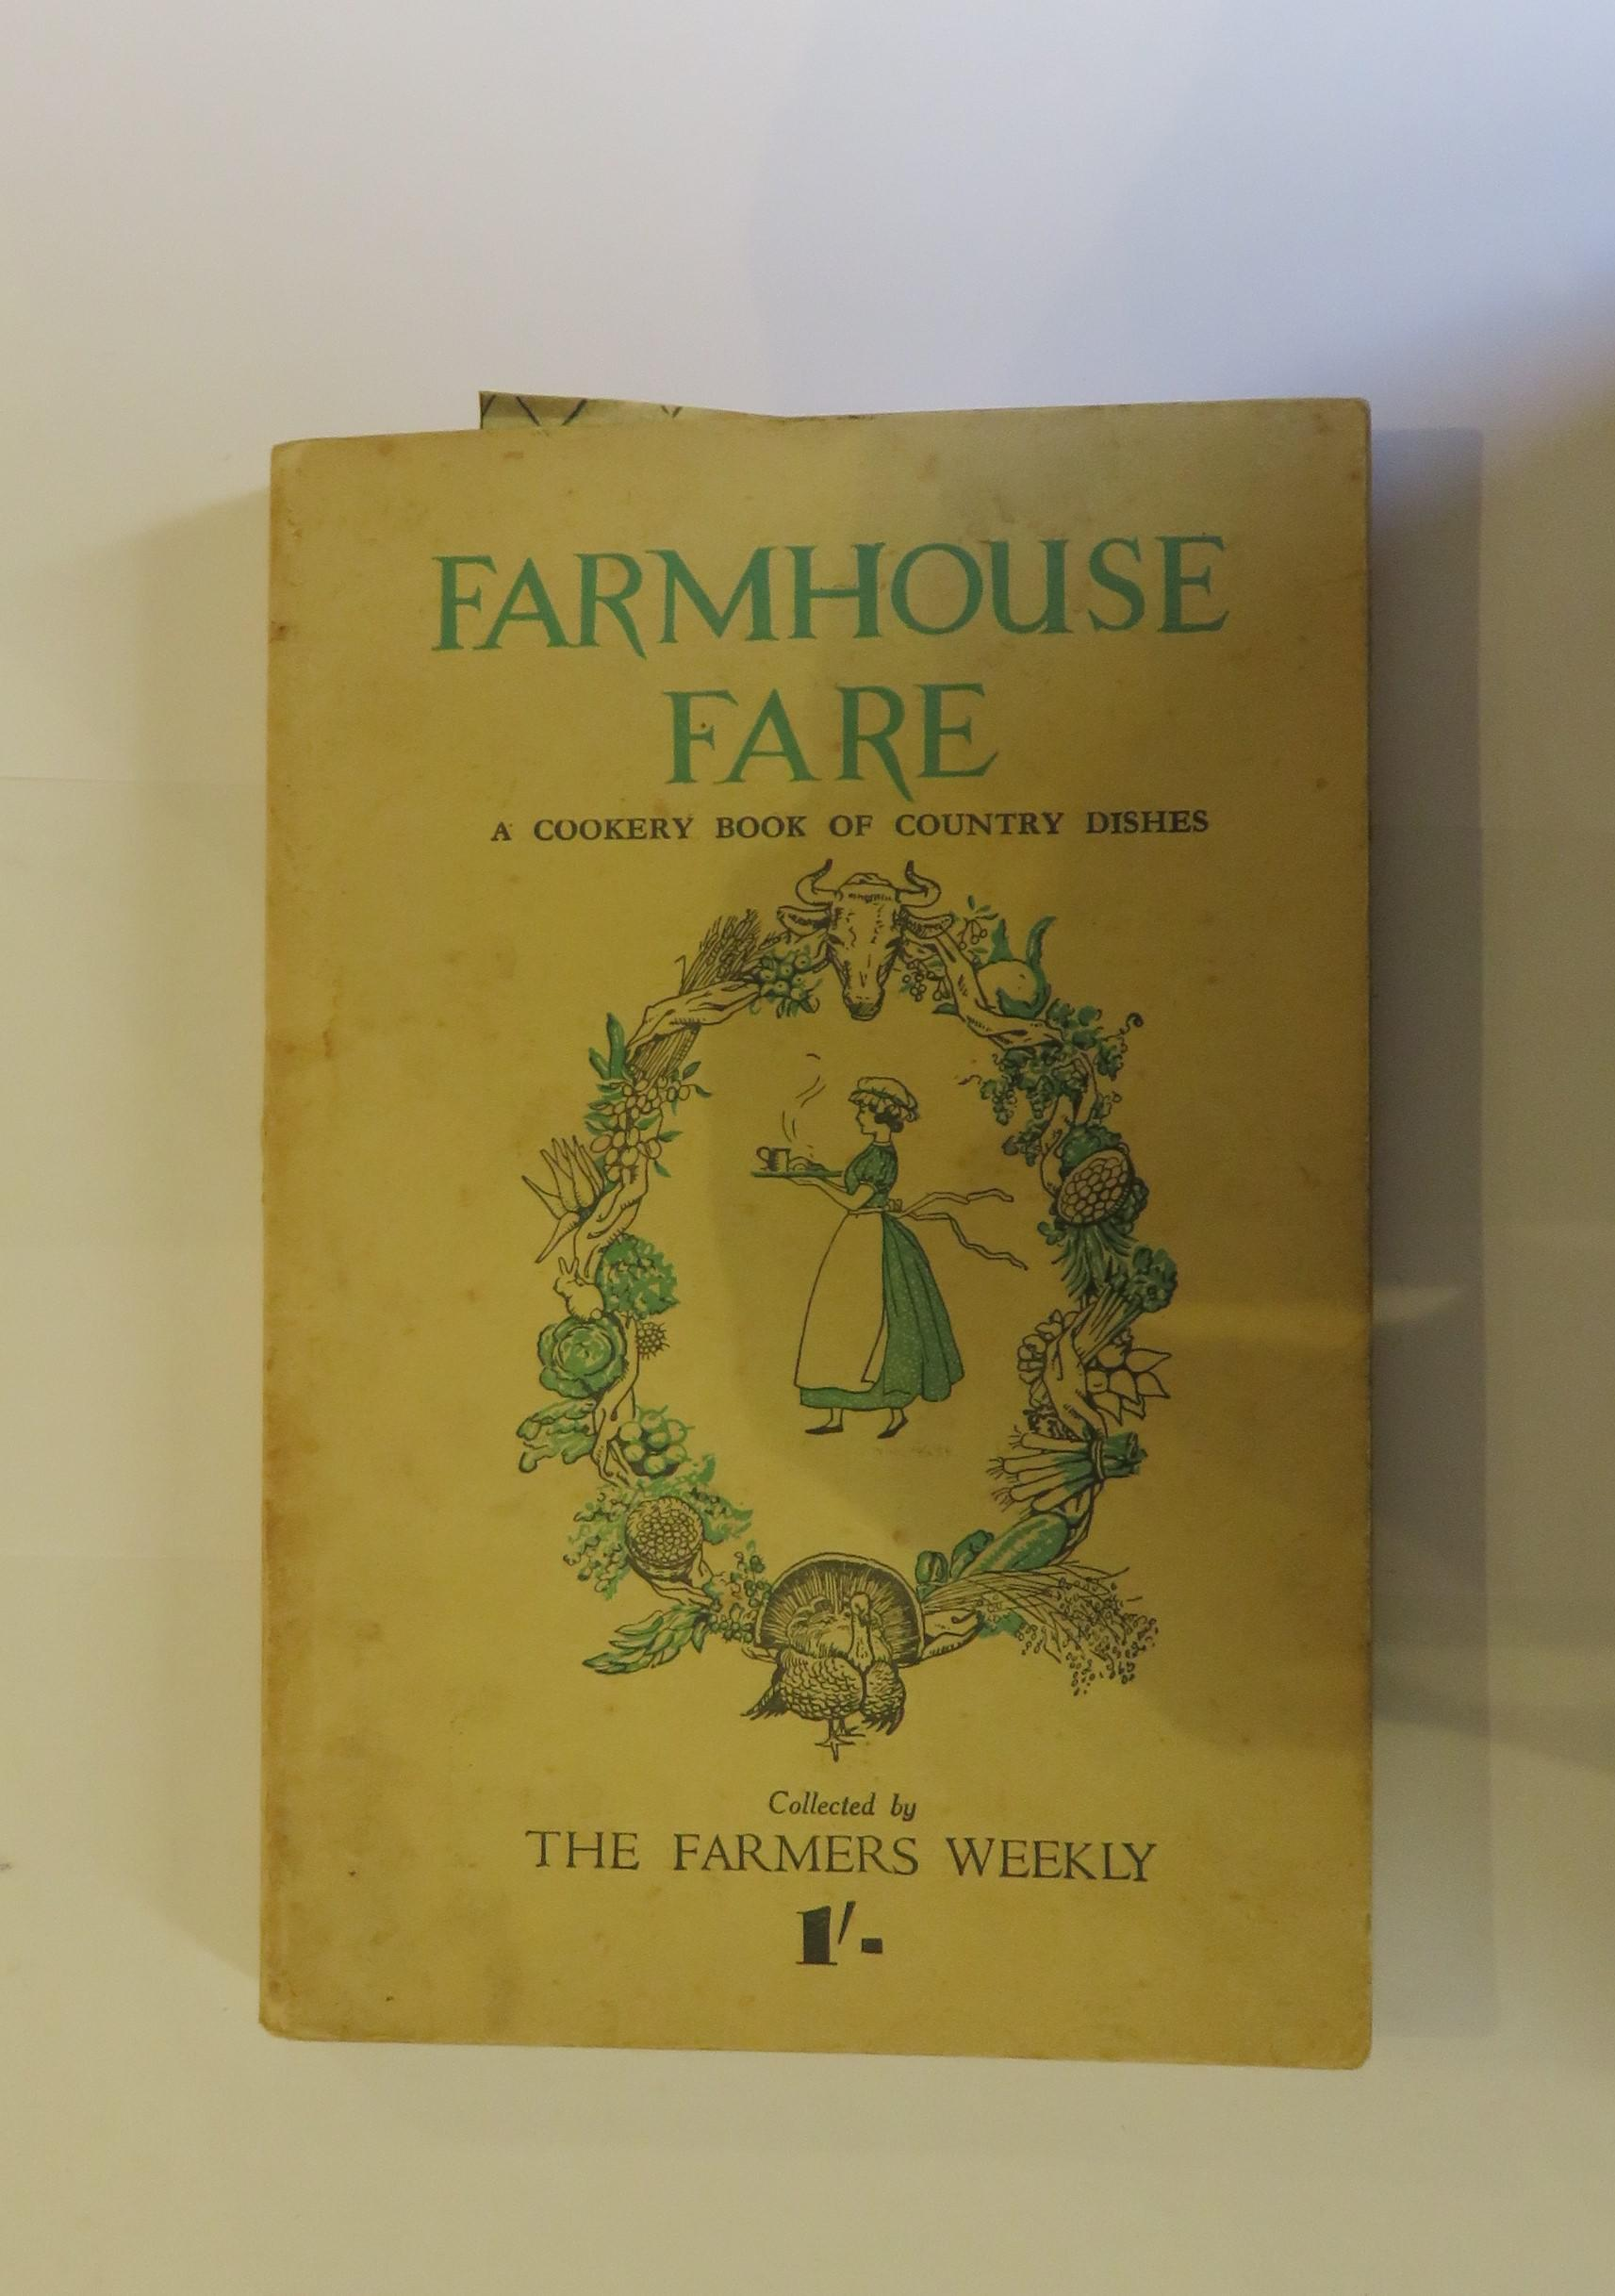 Farmhouse Fare: A Cookery Book of Country Dishes